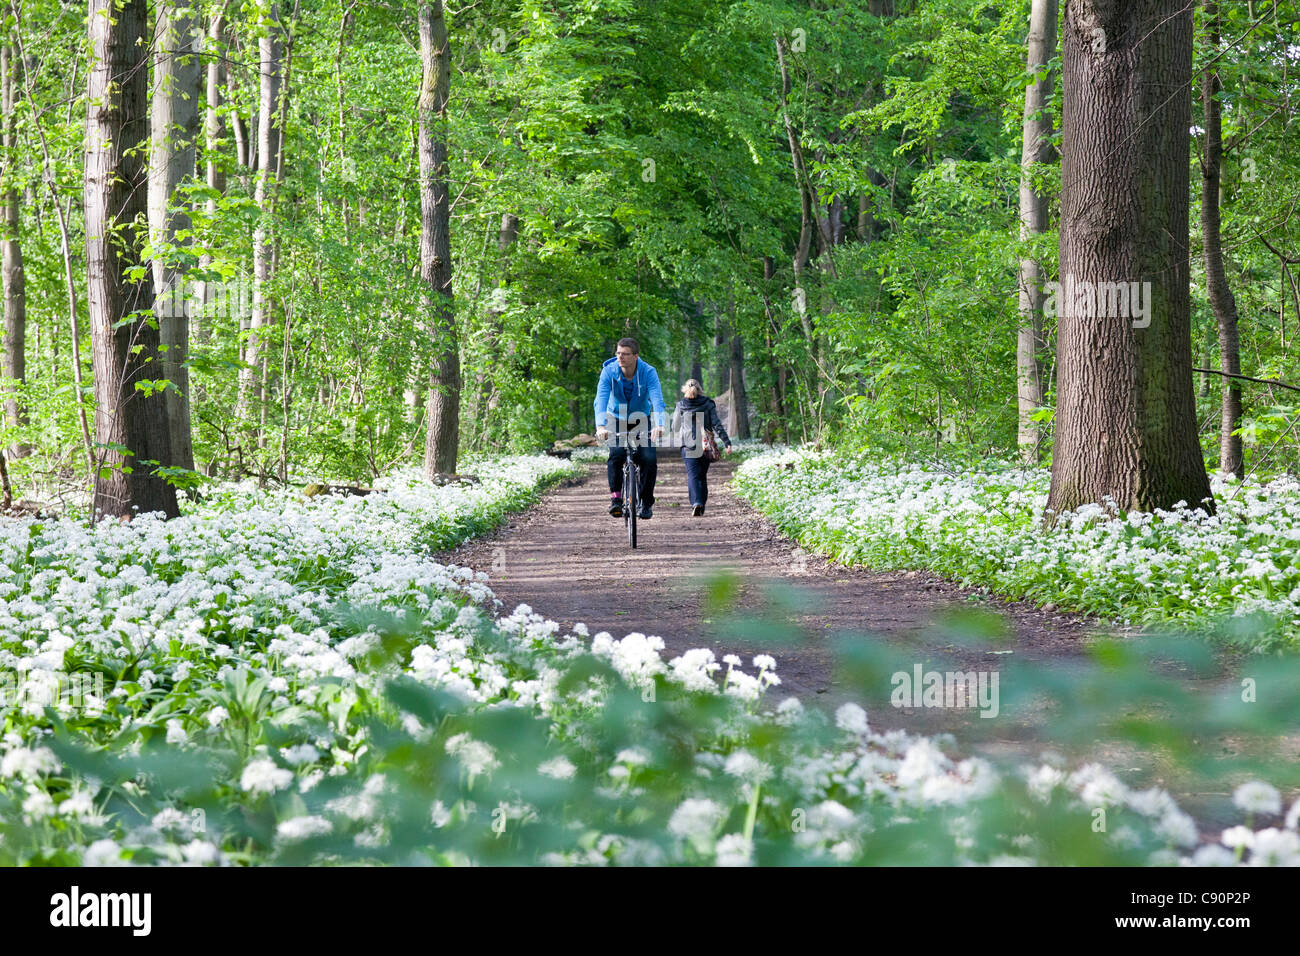 Cyclist passing riparian forest with blooming wild garlic, Leipzig, Saxony, Germany - Stock Image